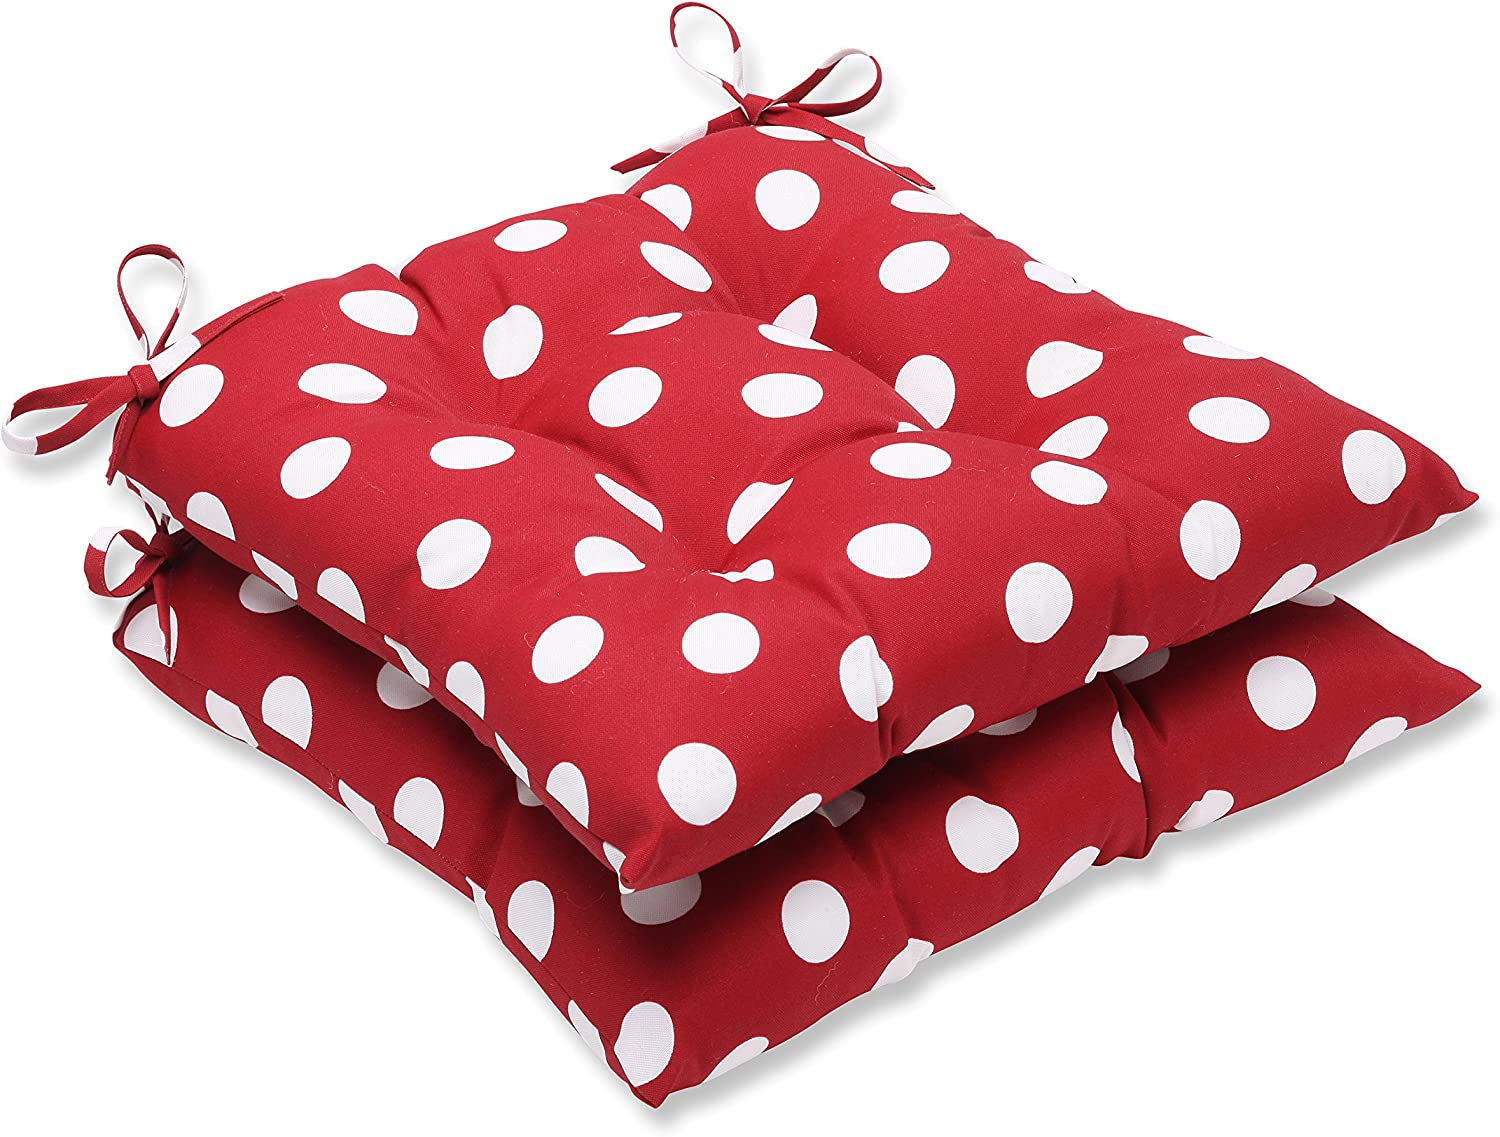 Pillow Perfect Indoor/Outdoor Polka Dot Tufted Seat Cushion, Red/White